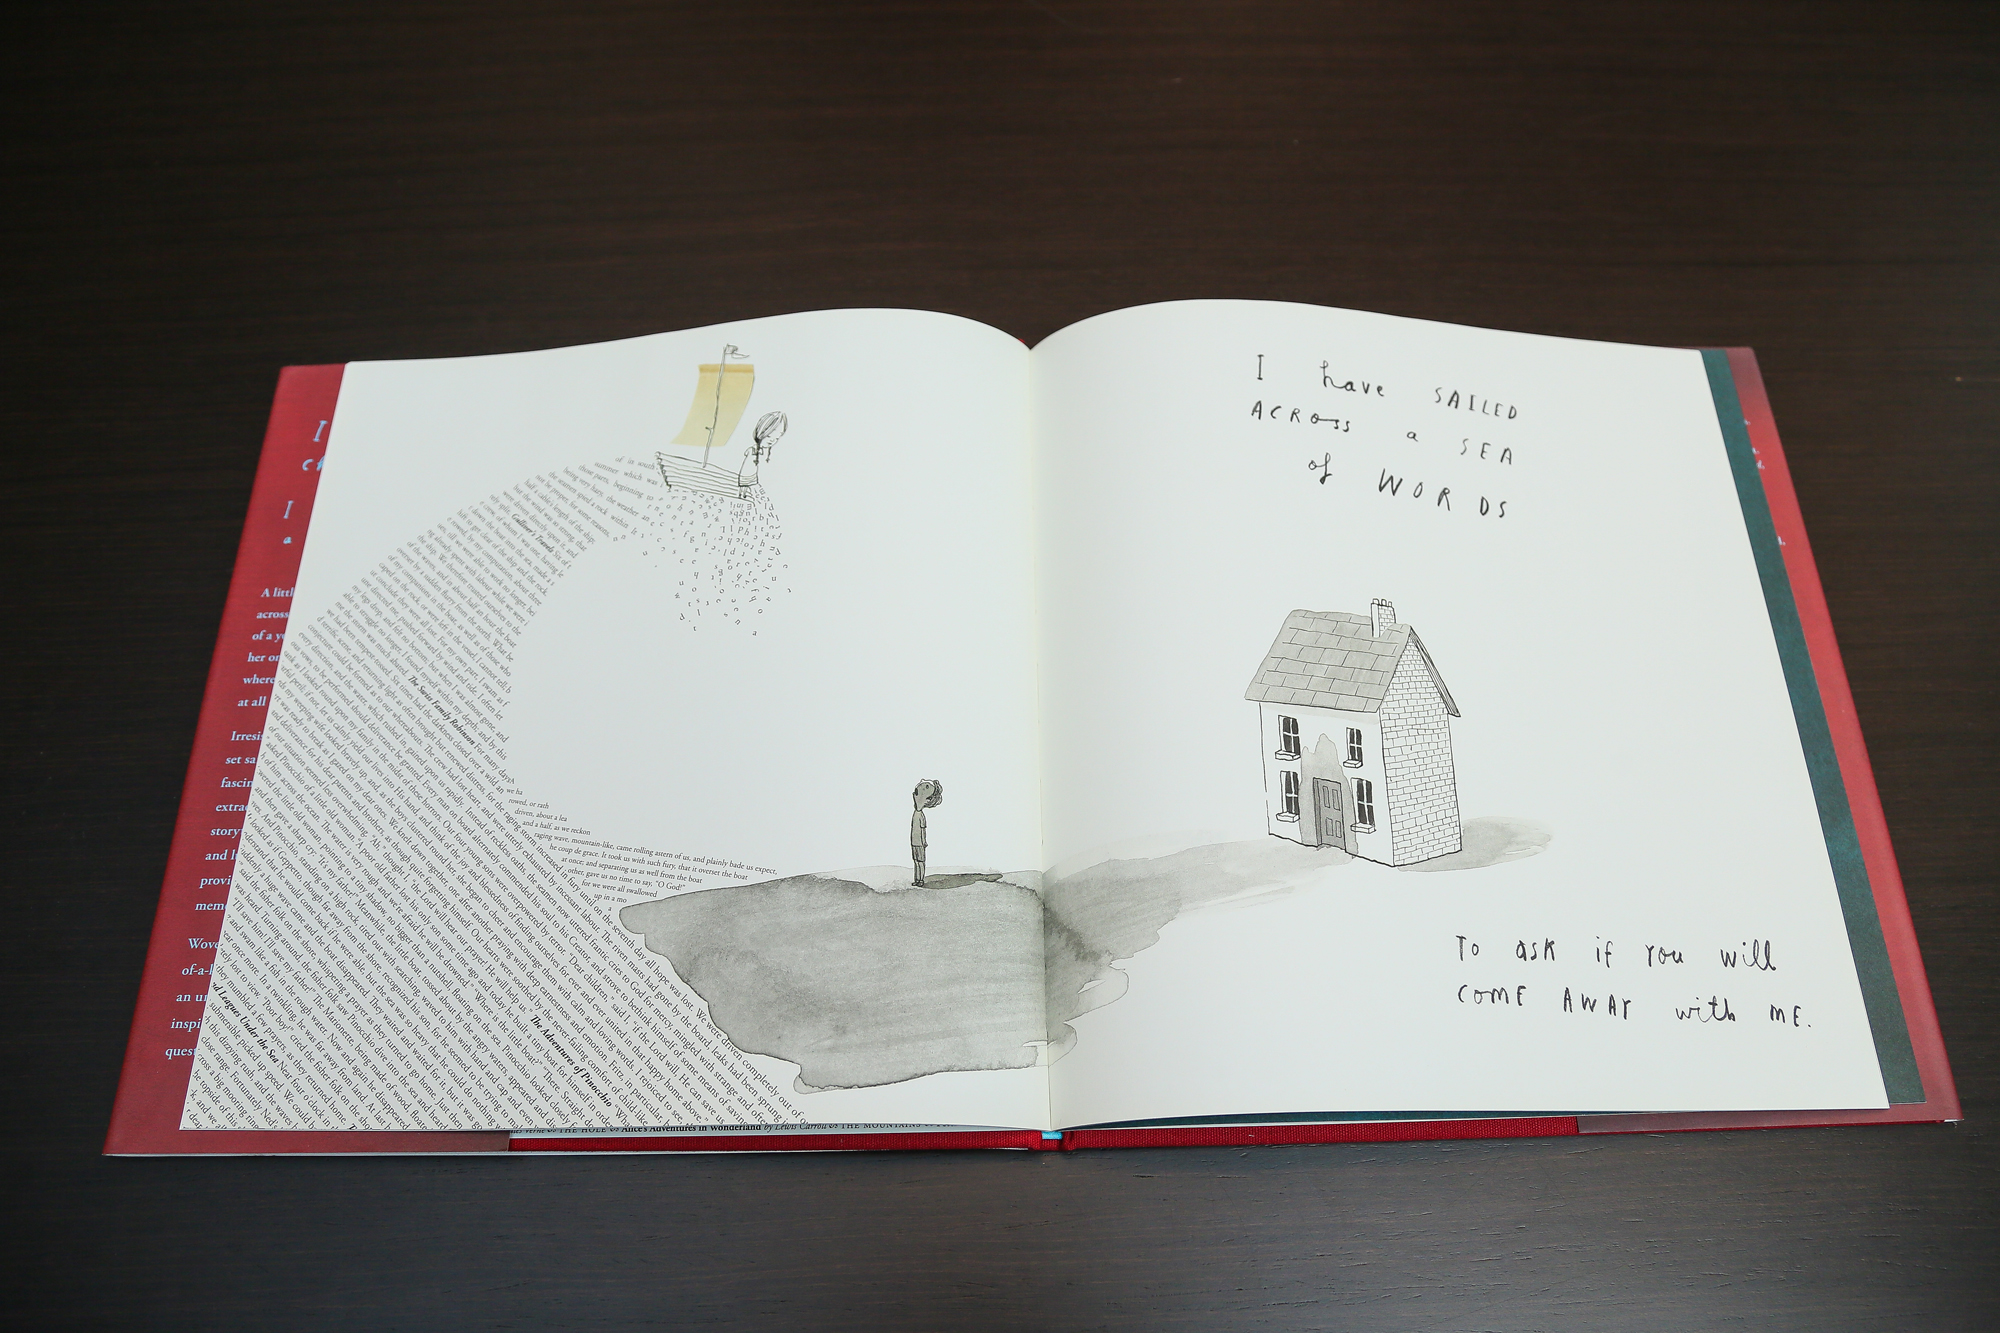 《A Child of Books》以文字拼湊圖像,嶄新手法令人驚艷。 A Child of Books, by Sam Winston and Oliver Jeffers, has illustrations assembled out of letters; the technique is an astonishingly effective new departure.